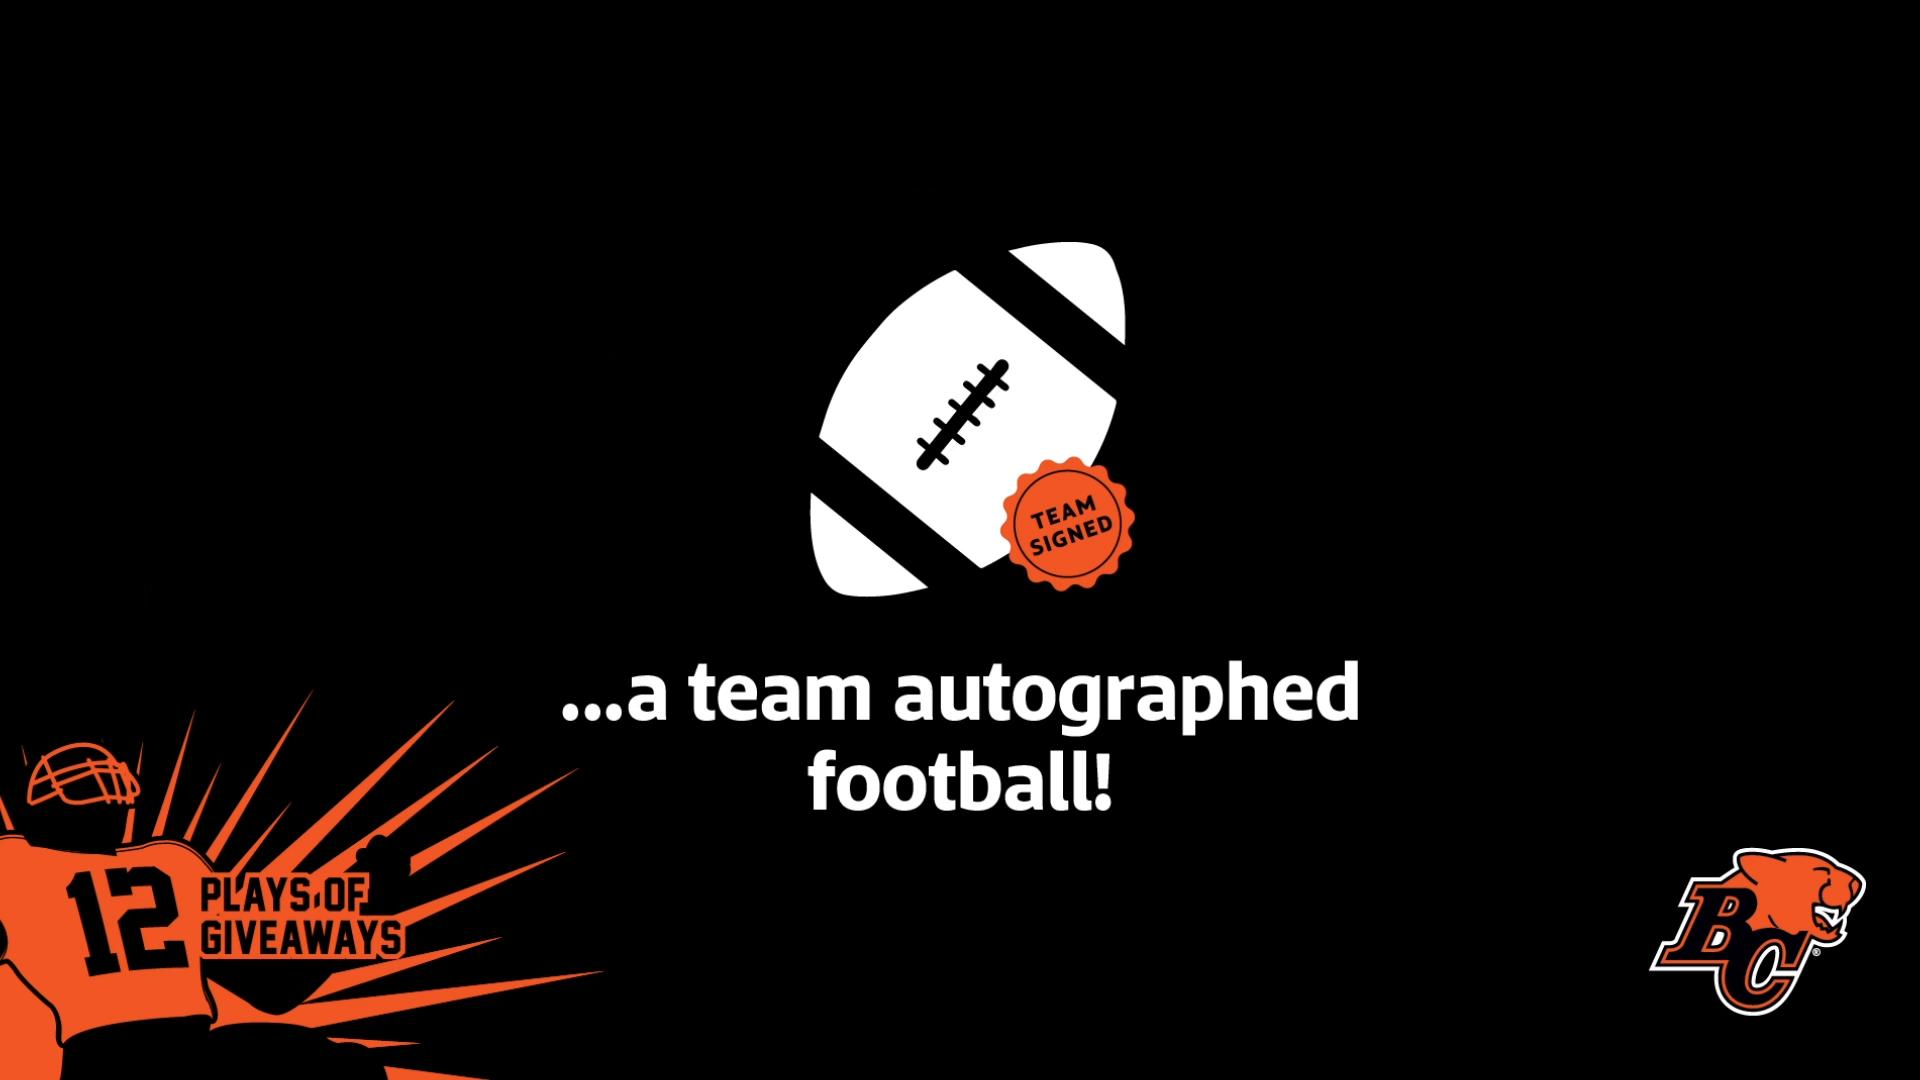 7c1300d1 12 PLAYS OF GIVEAWAYS: DAY 10- 10 TEAM AUTOGRAPHED FOOTBALLS